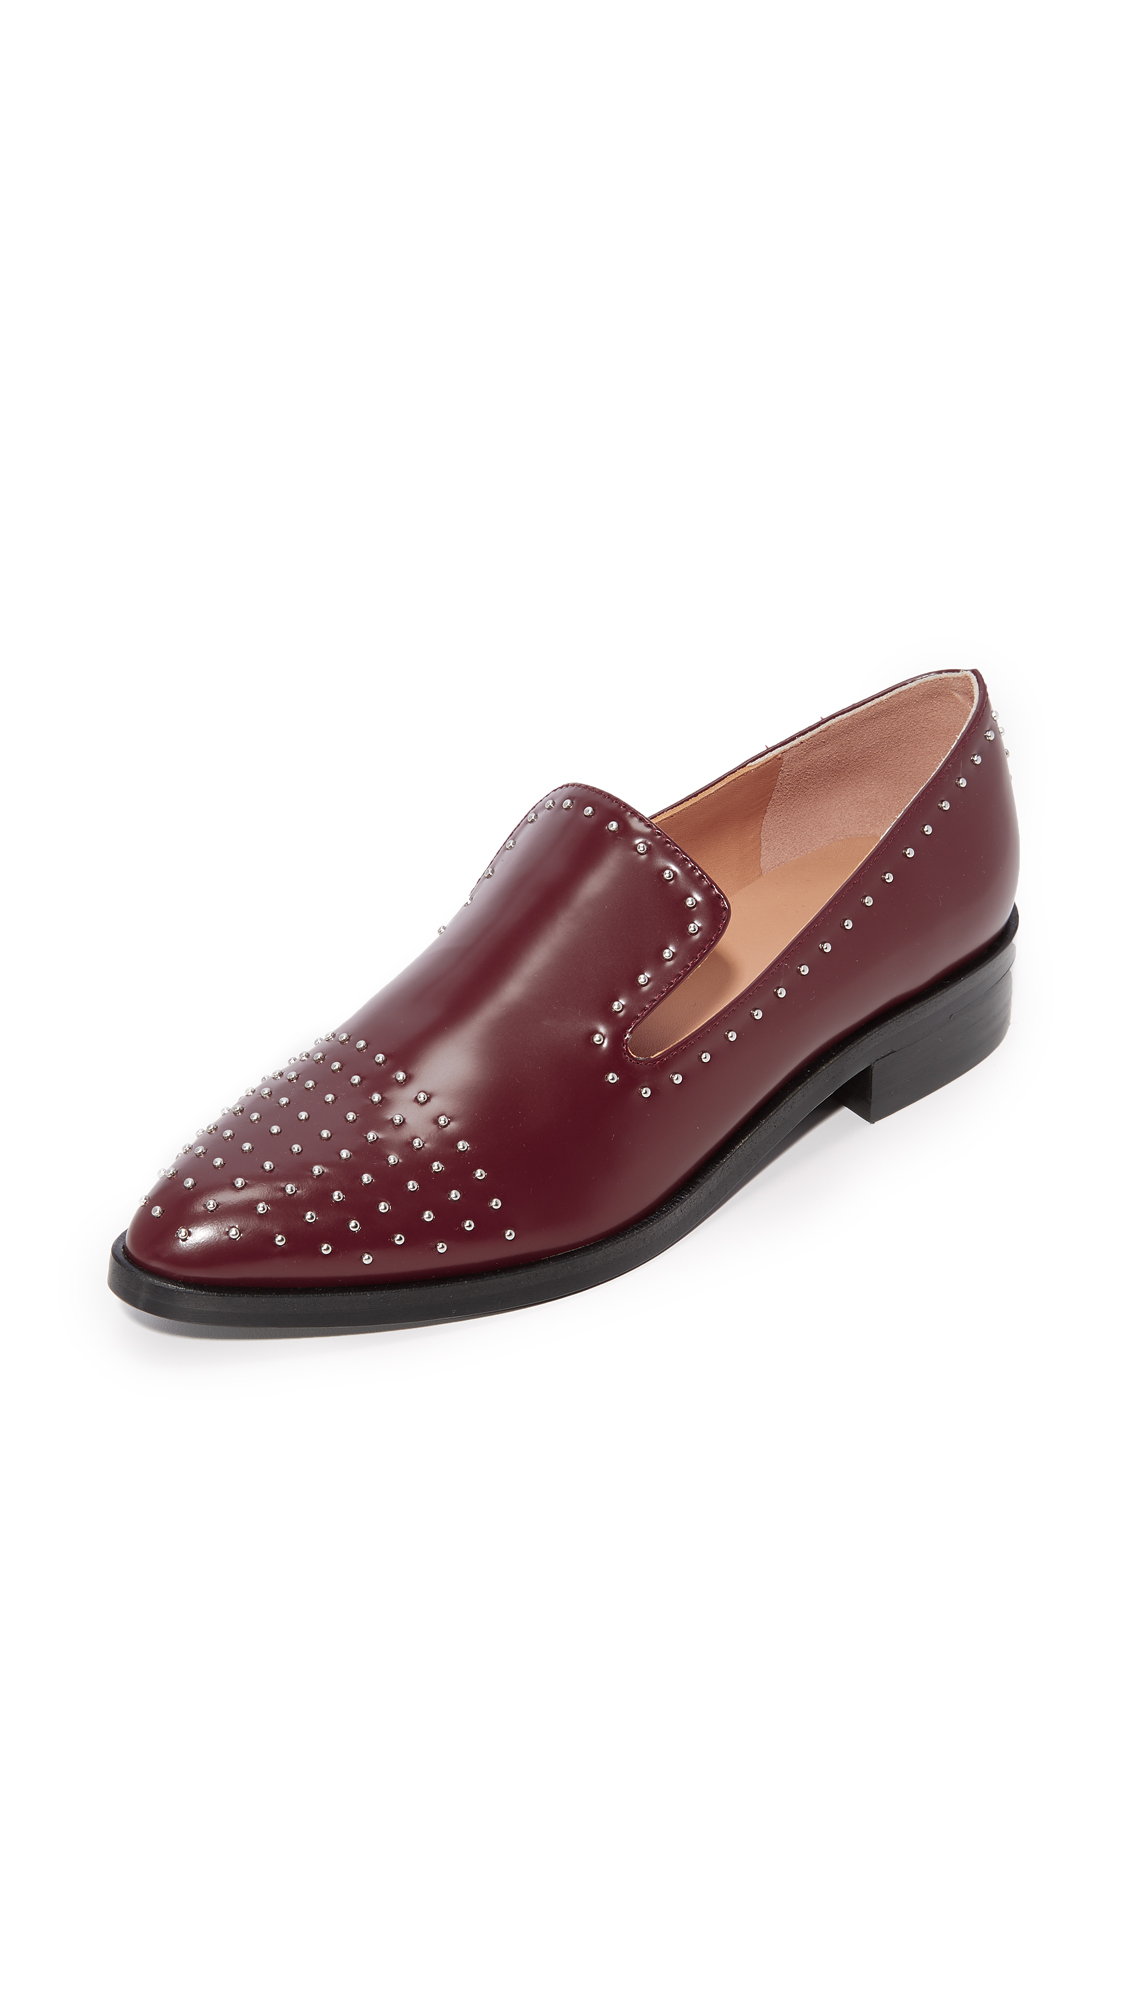 Sigerson Morrison Edna Studded Loafers - Bordo